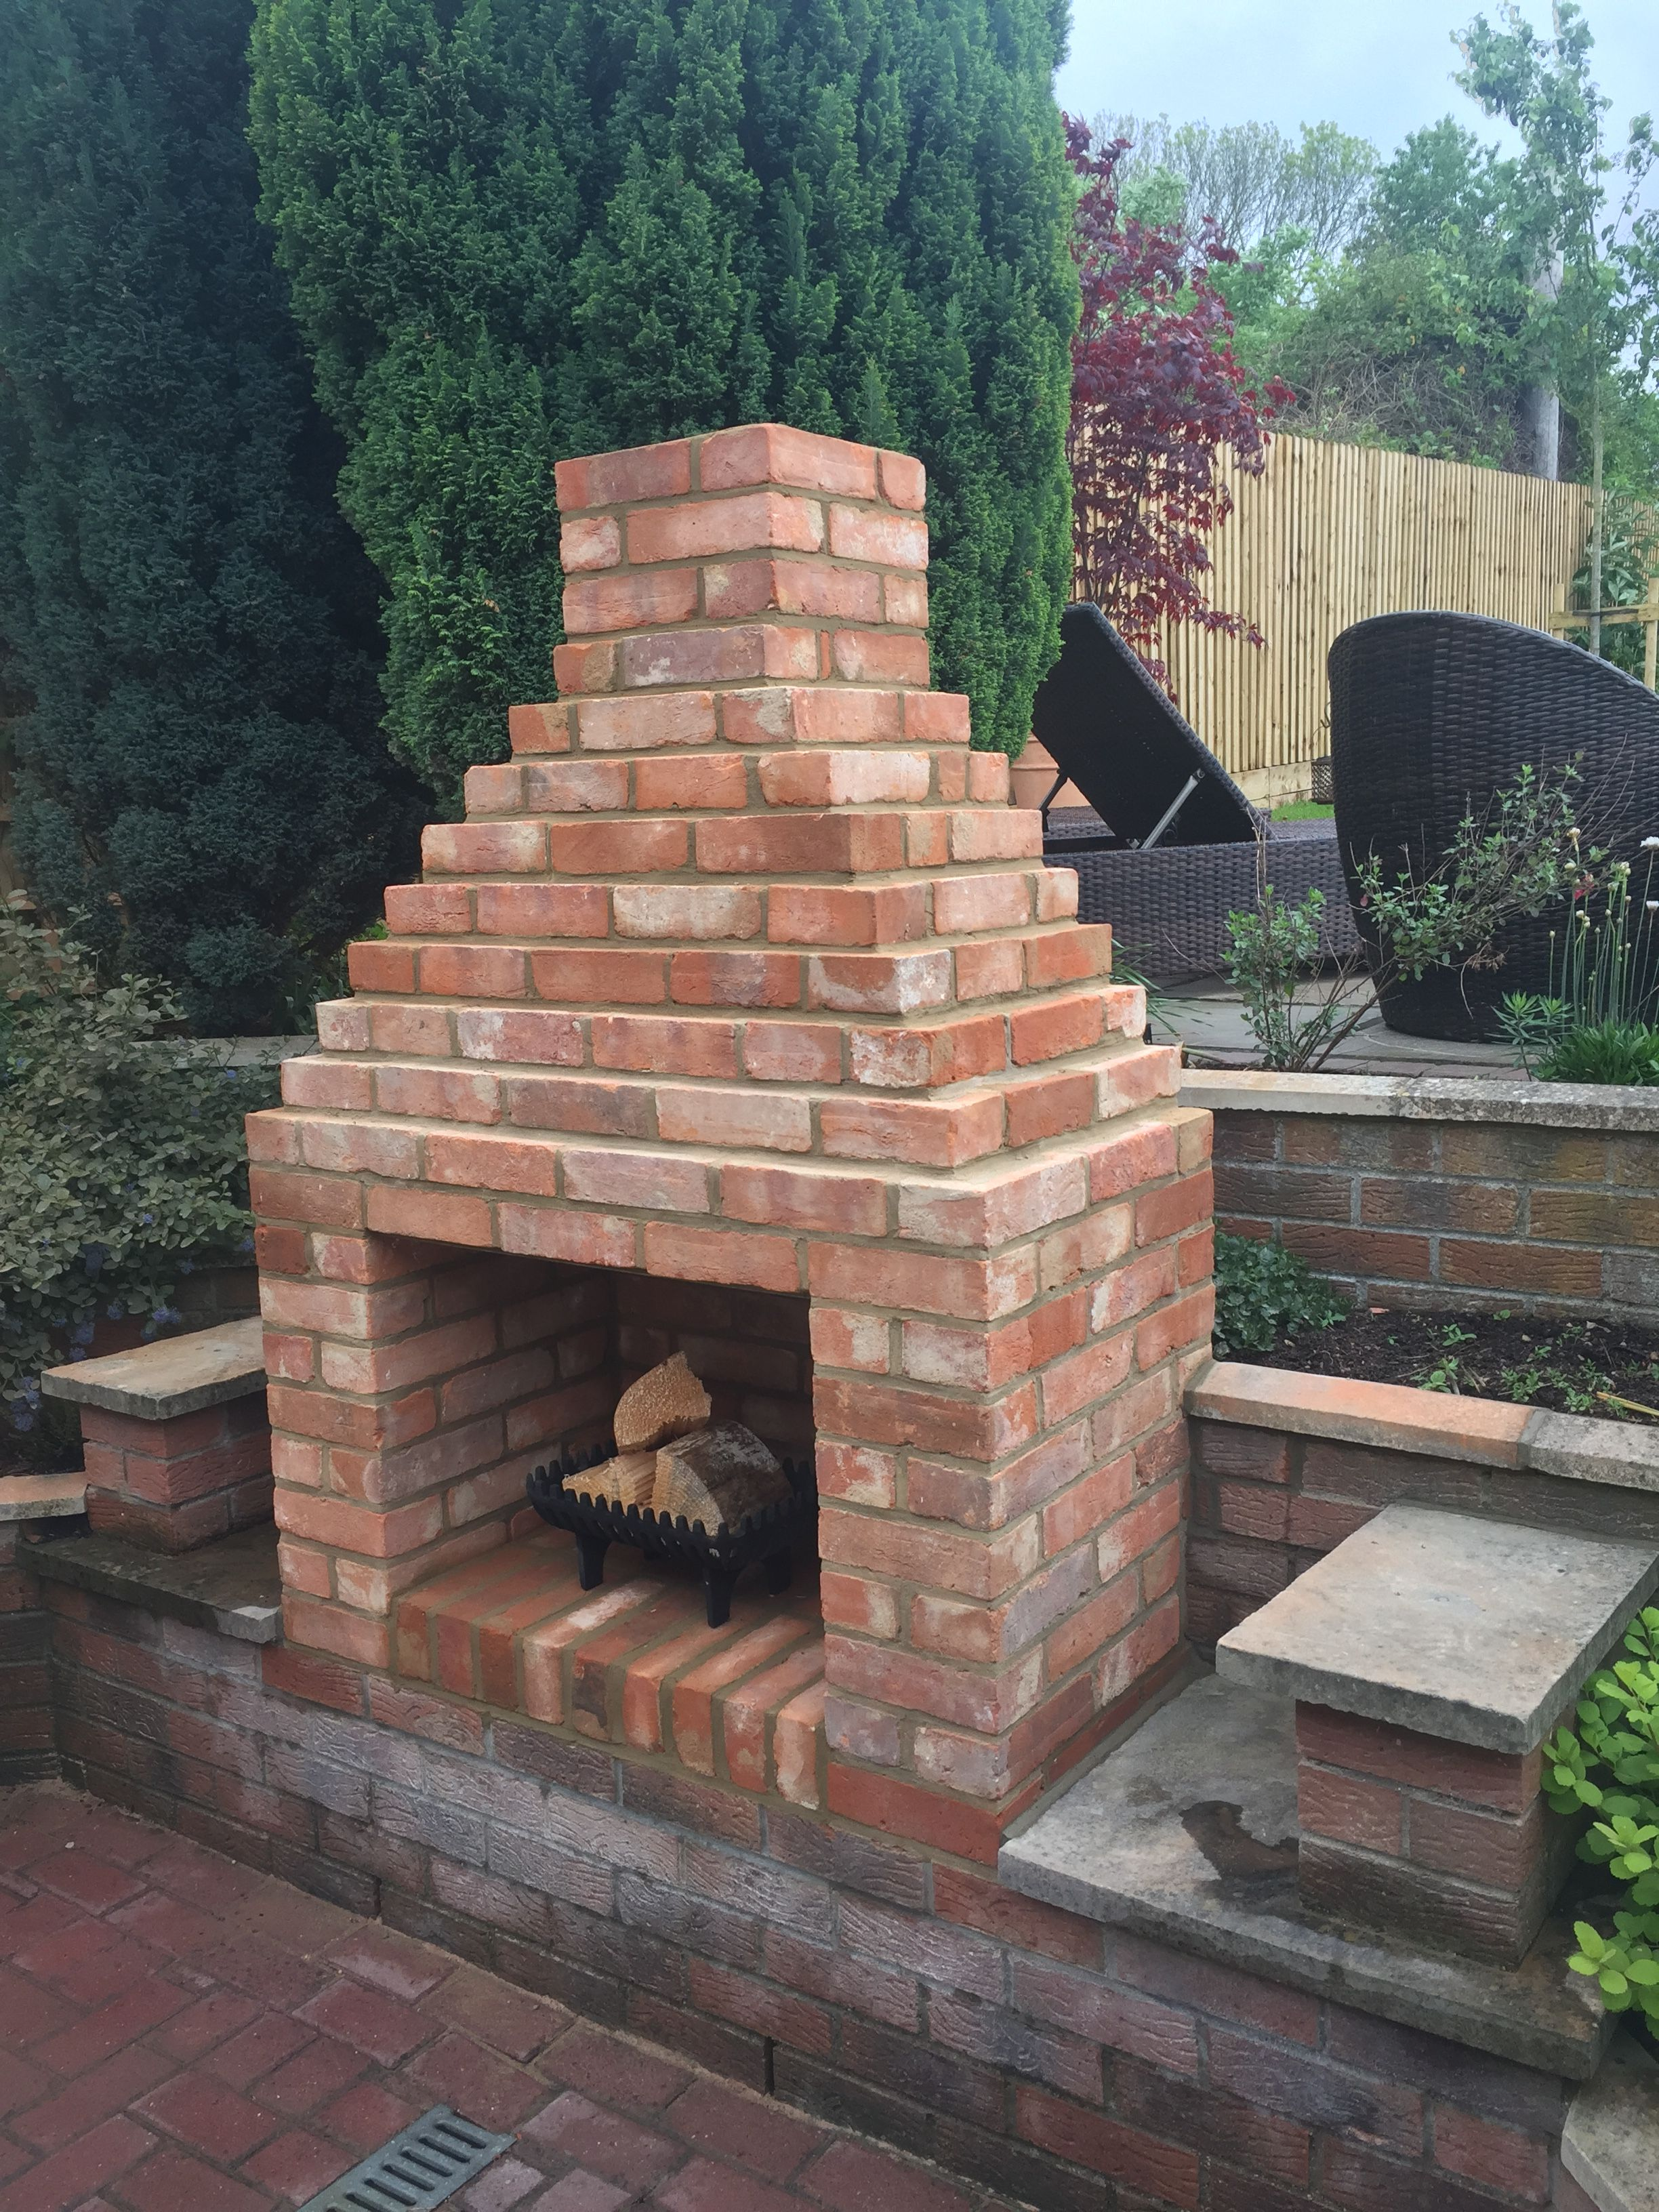 Our new brick outside fireplace | Outdoor fireplace patio ... on Brick Outdoor Fireplace Ideas id=93370